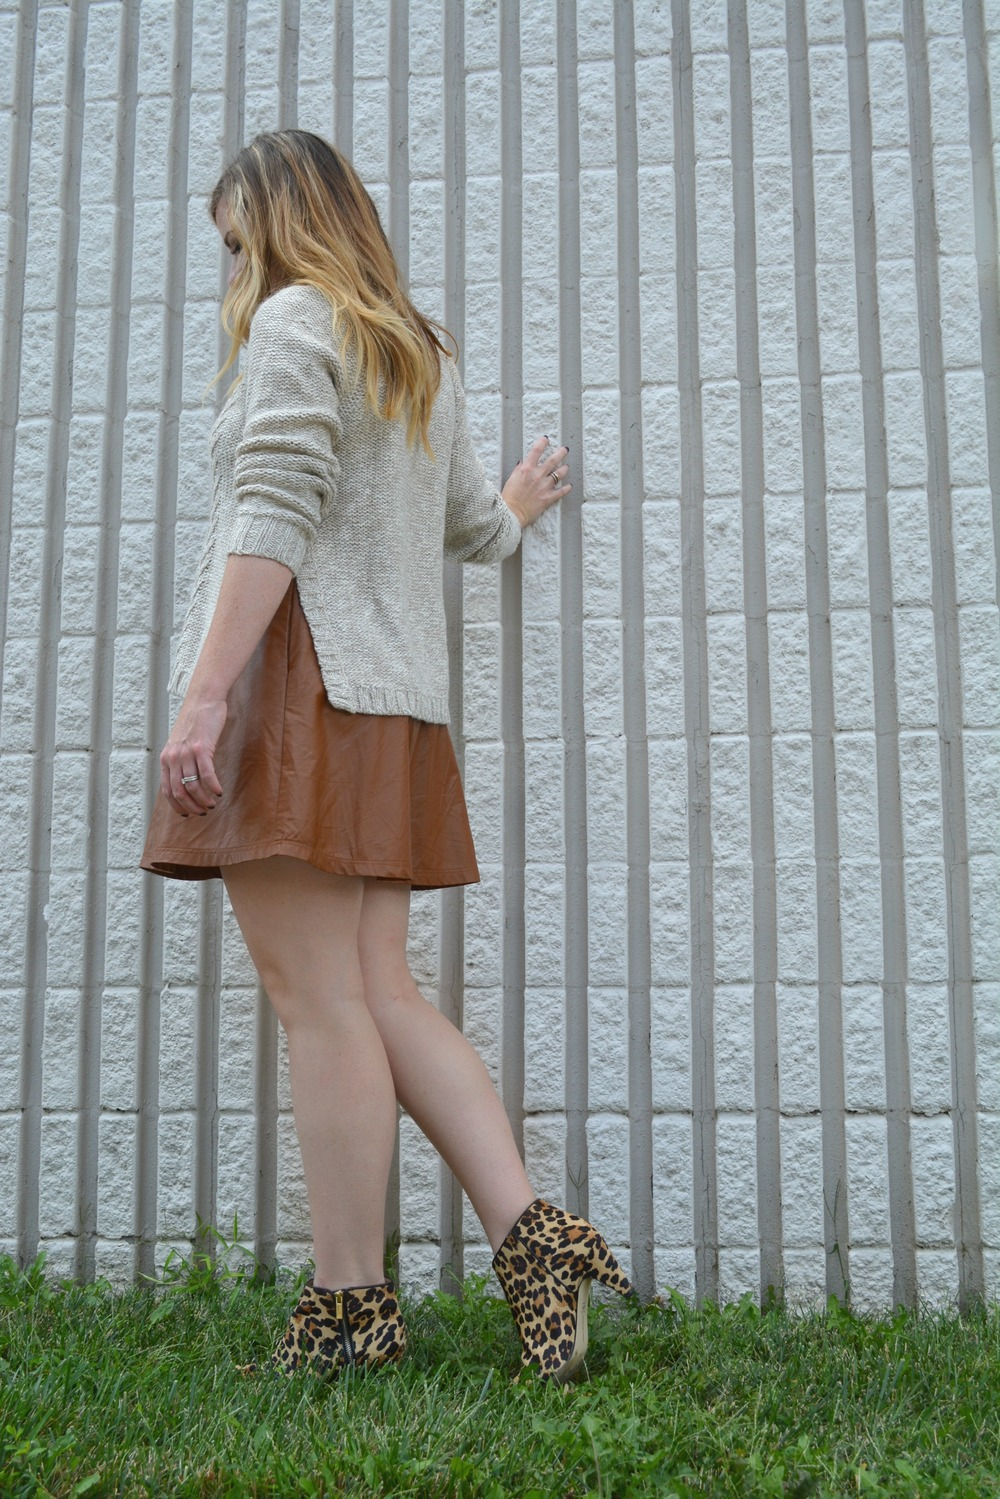 Creame sweater with tan leather skirt and leopard booties on Sophisticaited.com